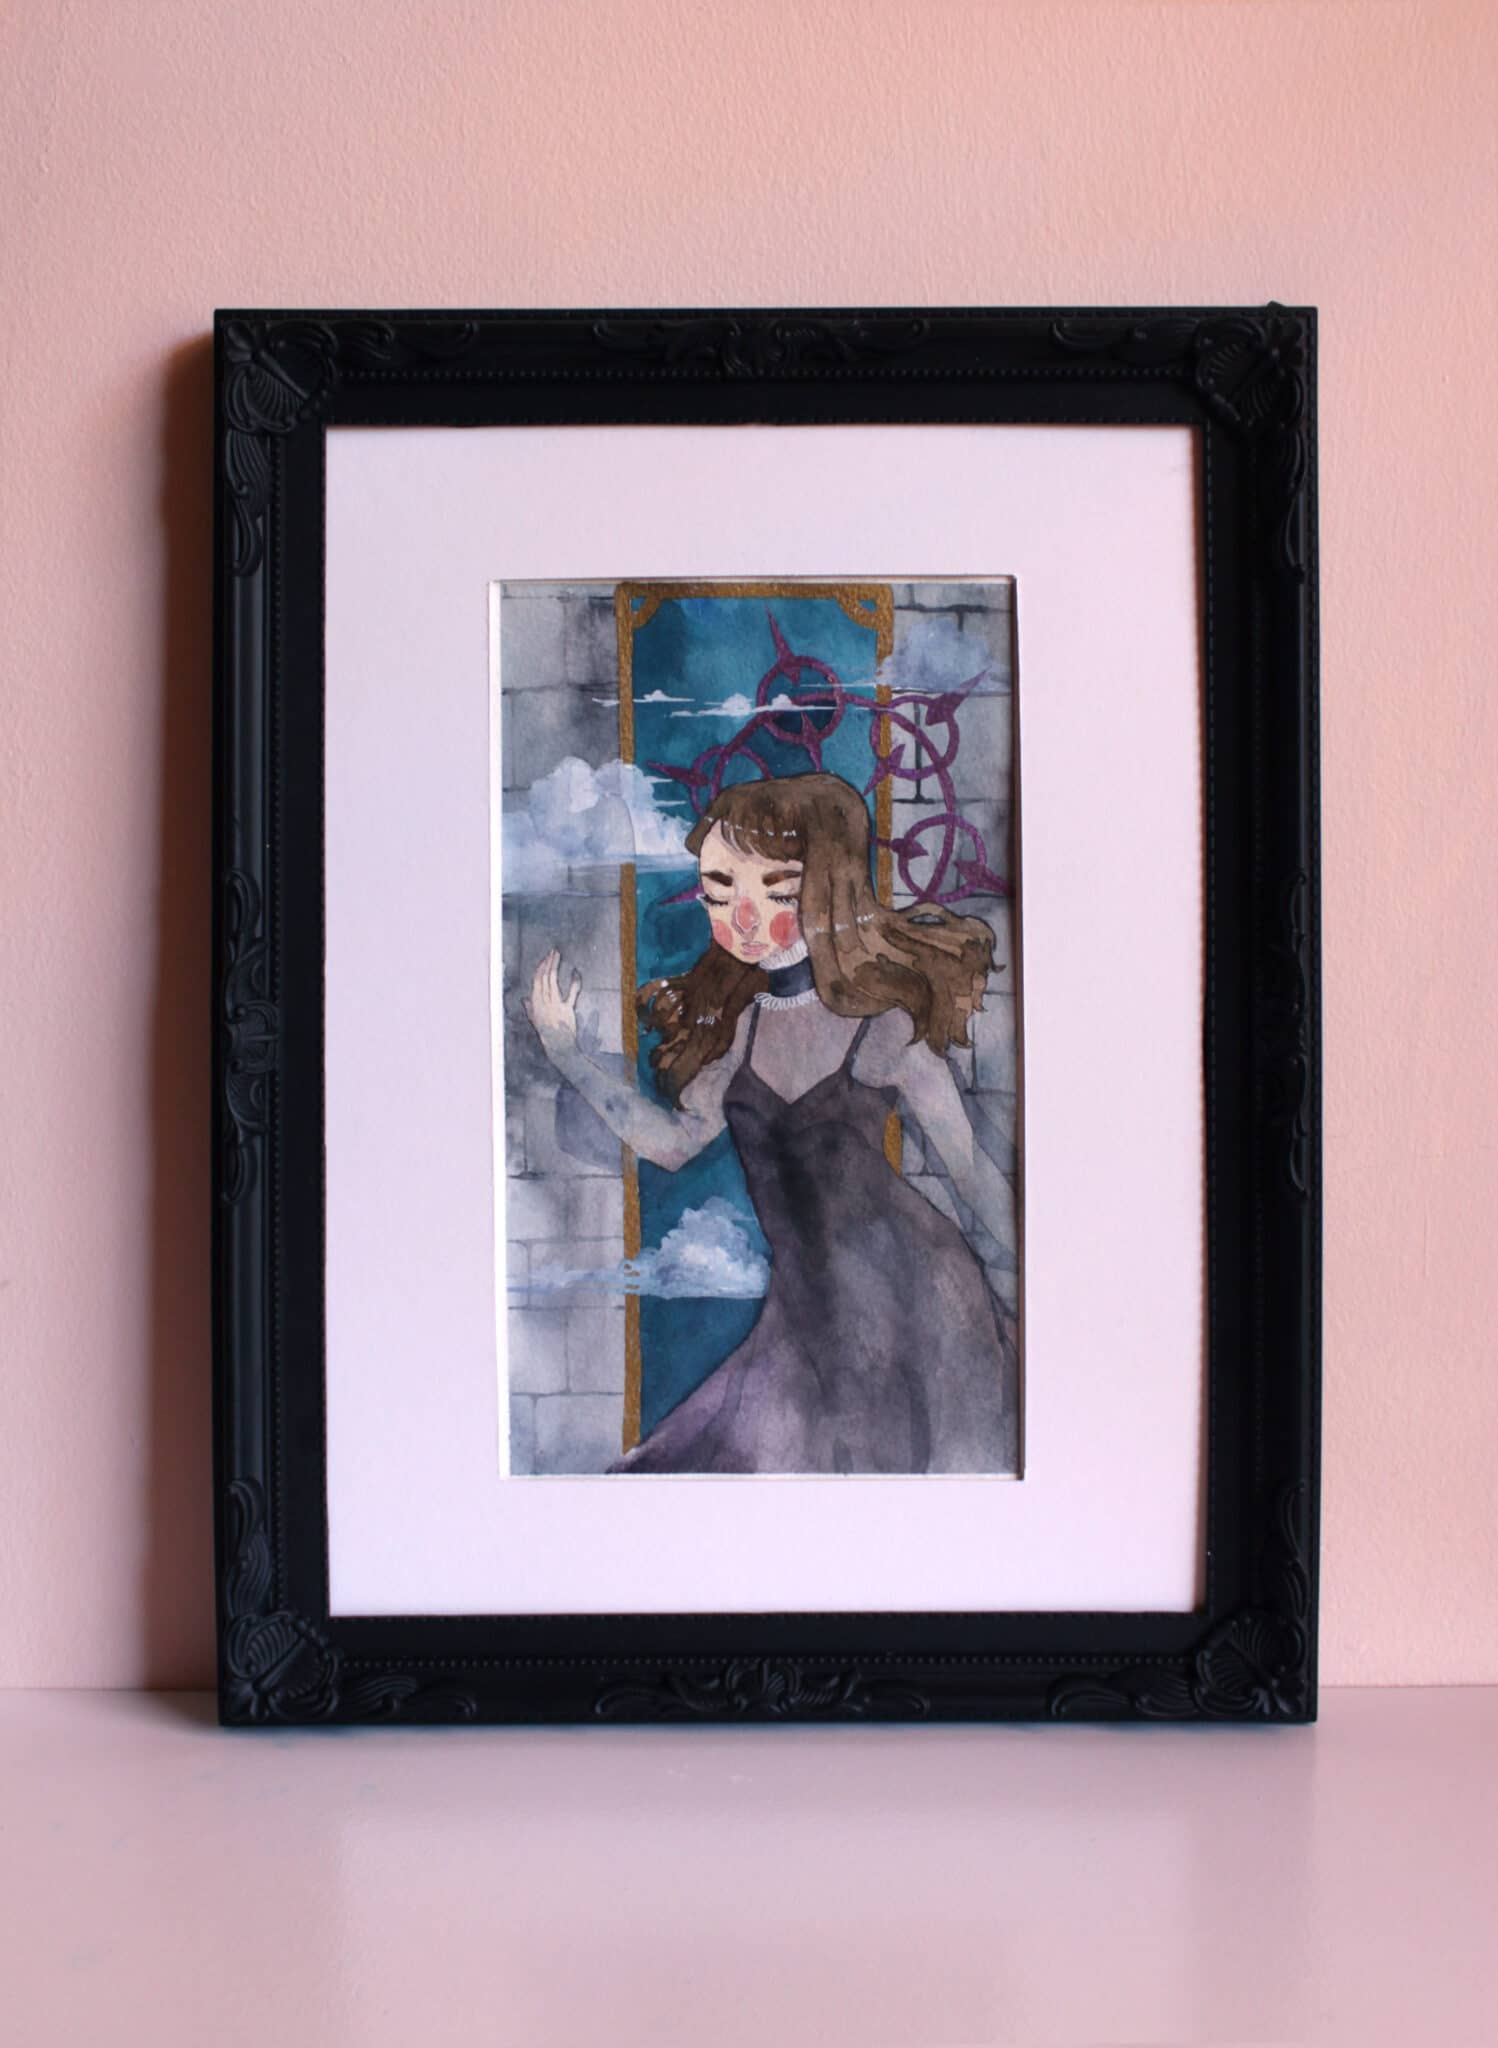 Alchemical Girls I – Celestial By Coraline Caroline (Almost Solo Exhibition)